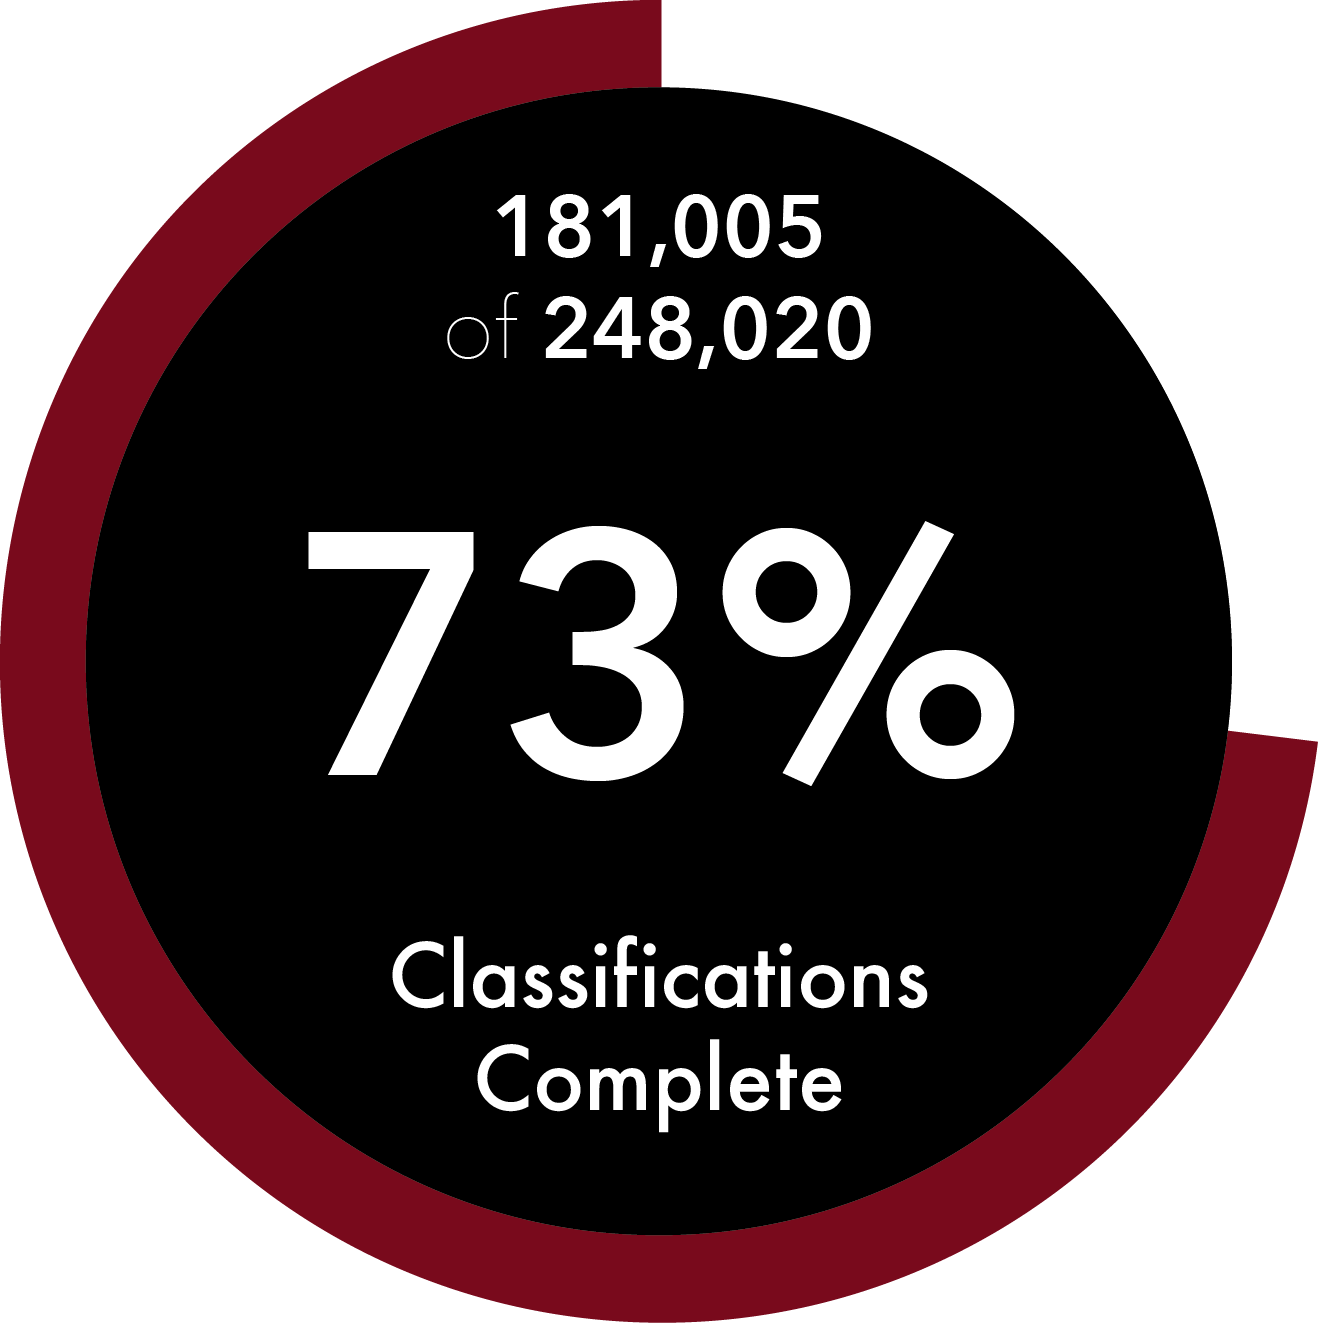 This image shows our progress. 181,005 of 248,020 deed transcriptions have been completed since the start of Ramsey County. This means we are 73% done with Ramsey County transcriptions.